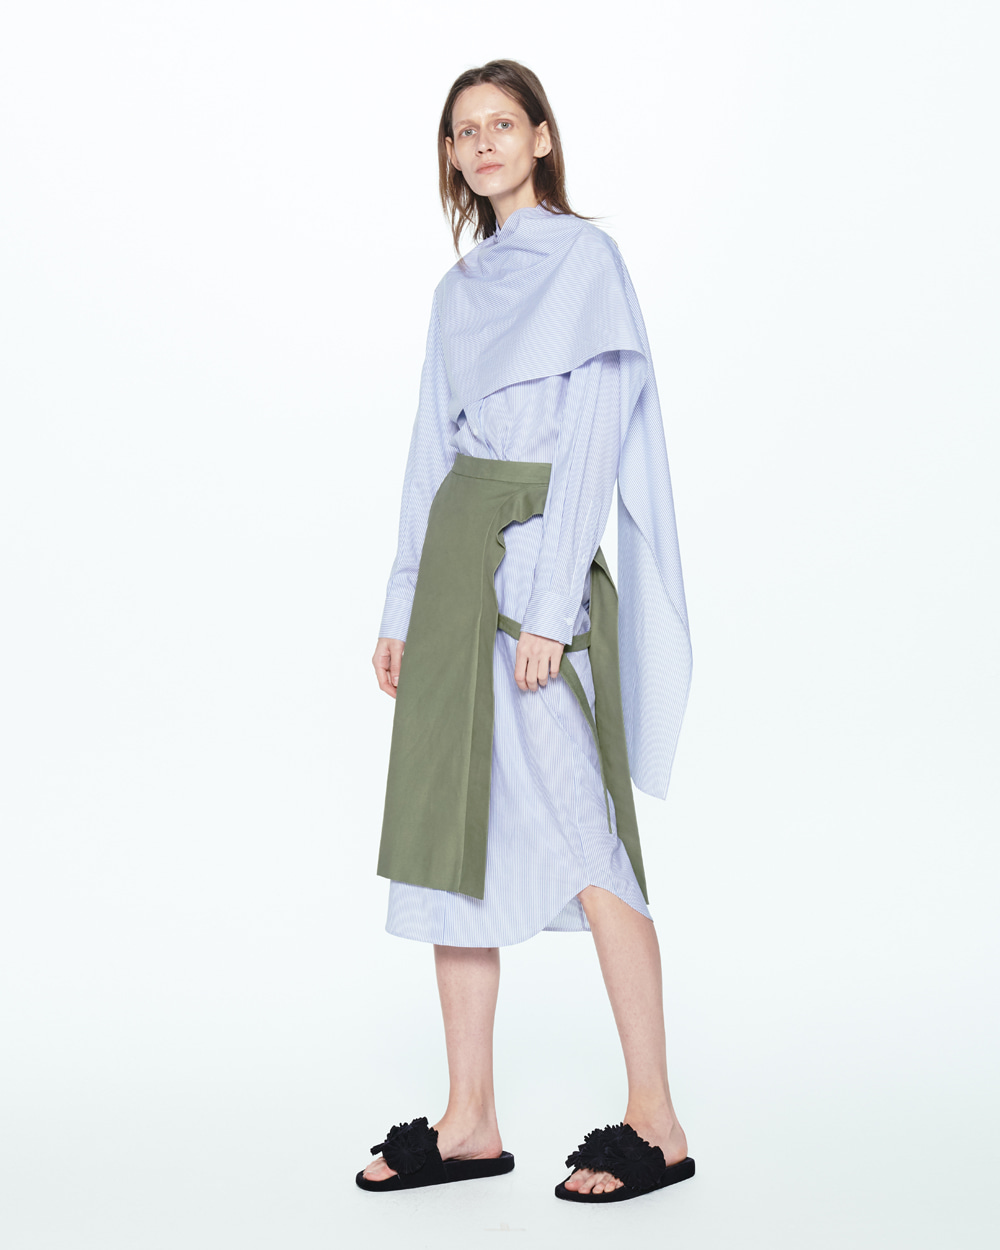 PF20 LAYERED SIDE OPEN SKIRT